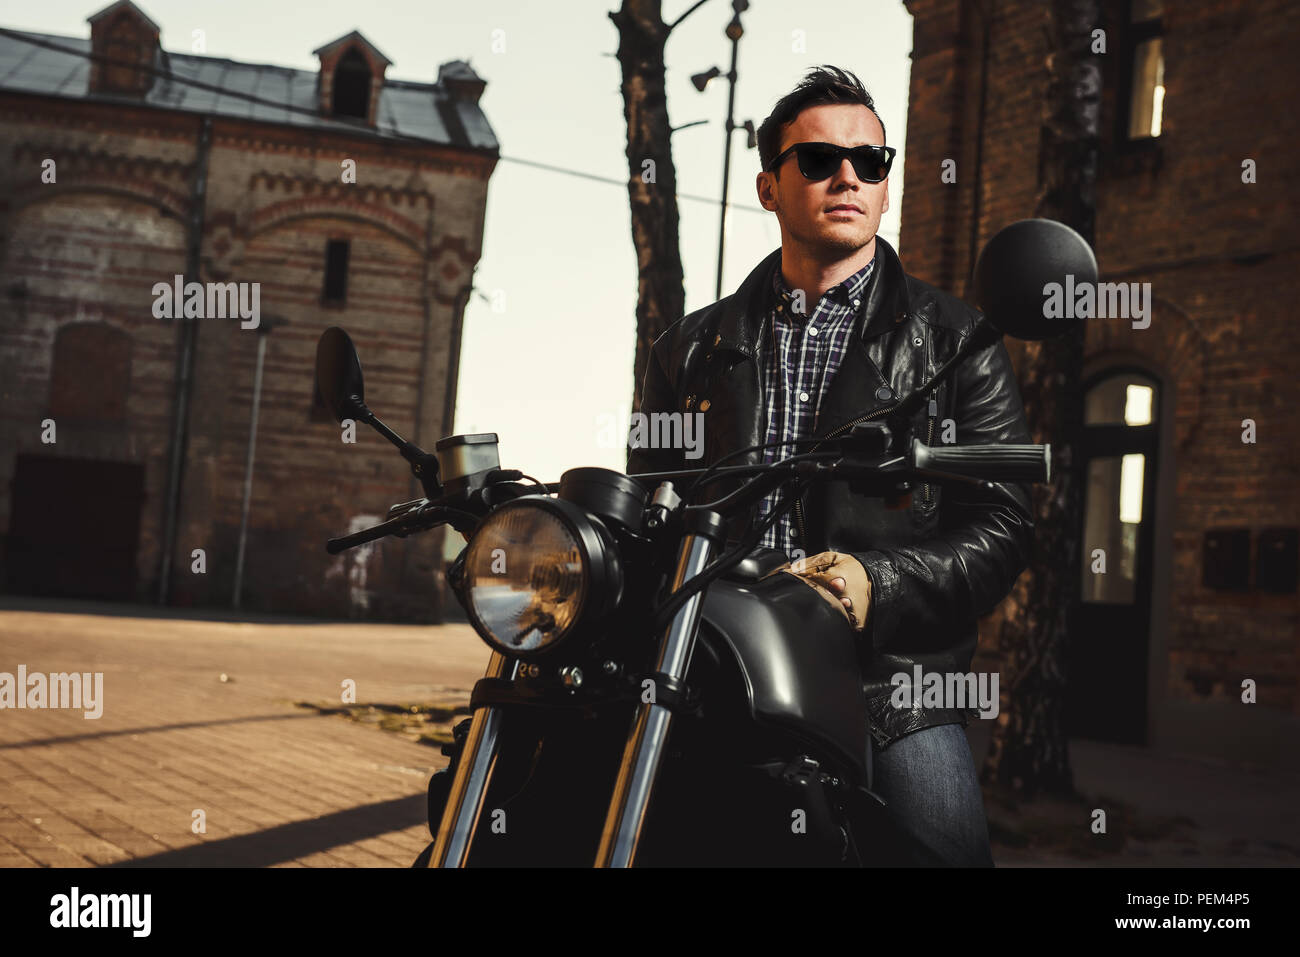 Man sitting on a cafe-racer motorcycle outdoors - Stock Image